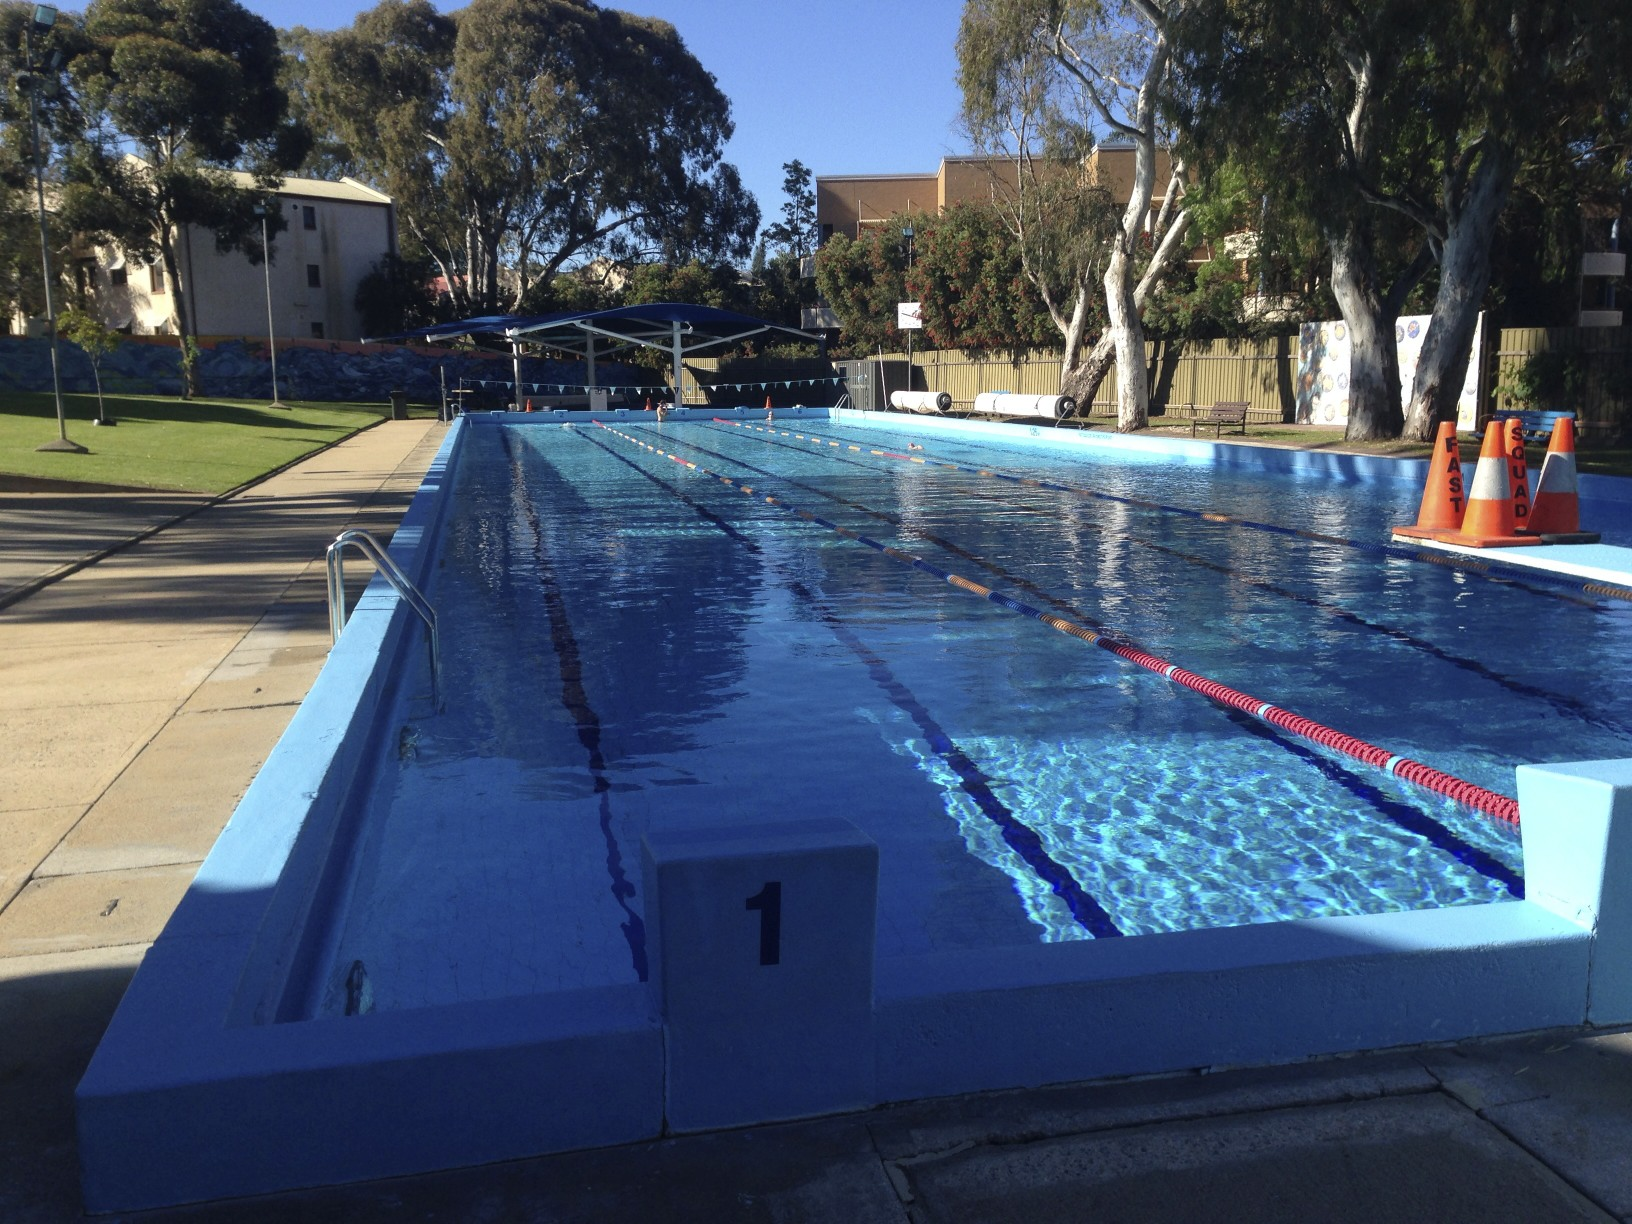 This Is The Oldest Community Swimming Pool In South Australia It Is 55 Yards Long Not 50